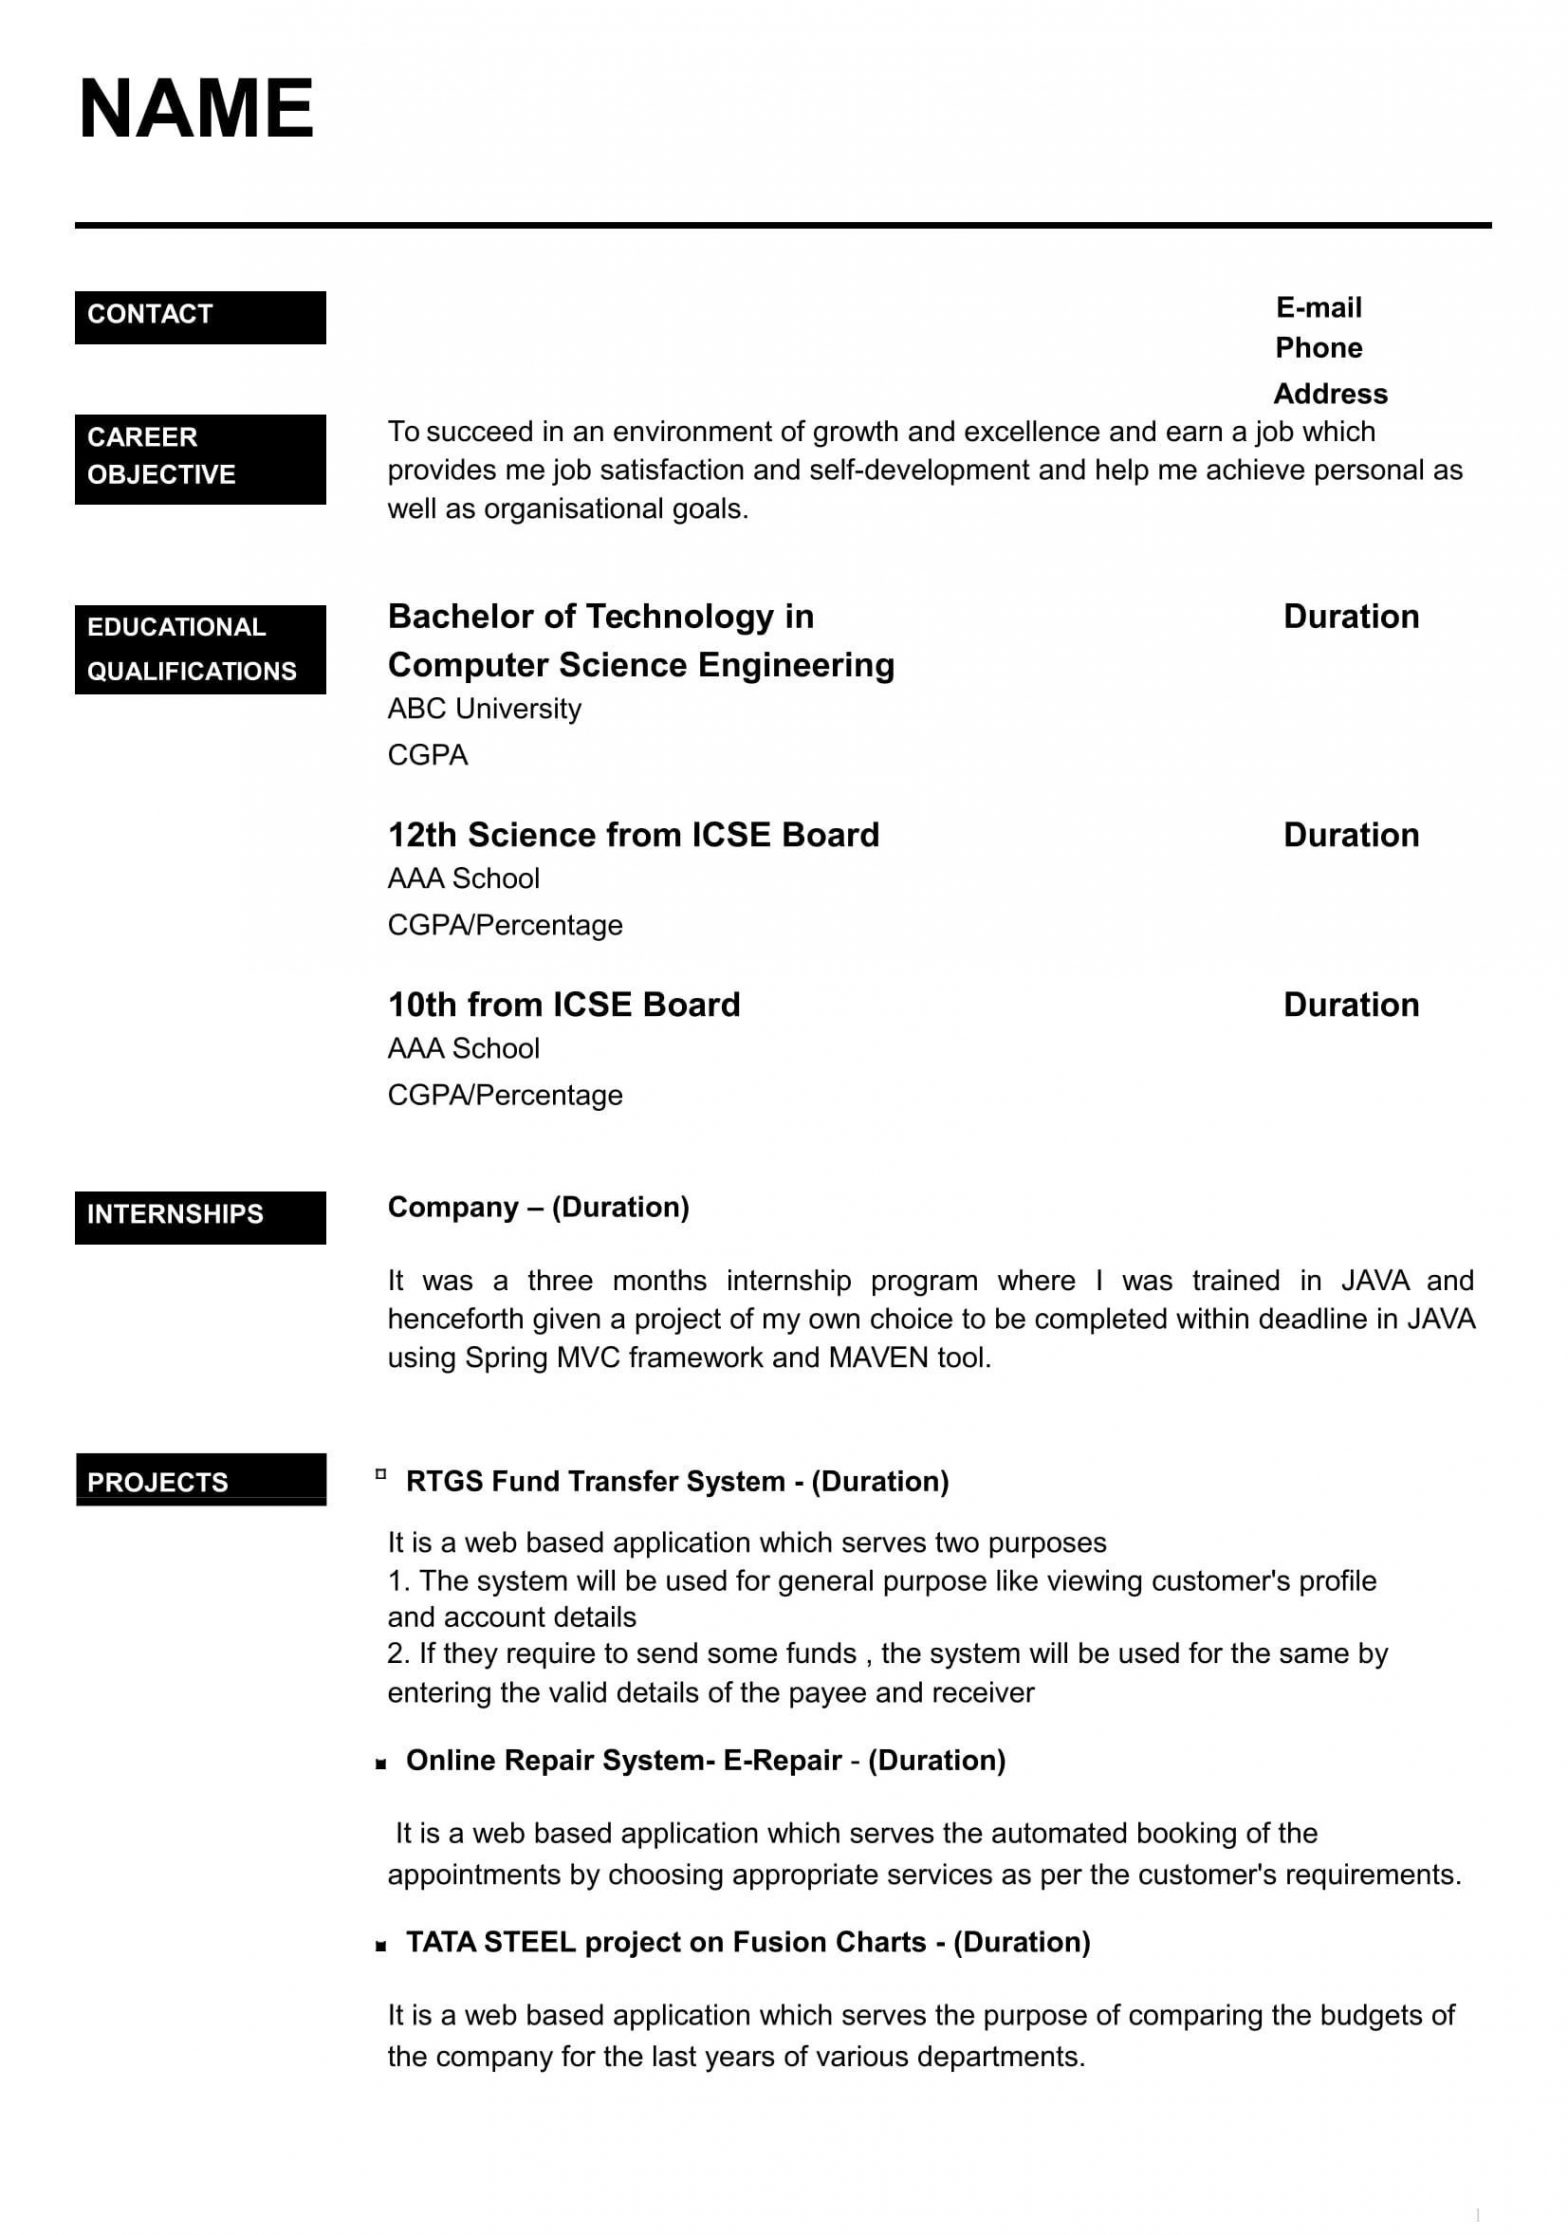 Sample Resume for Computer Science Engineering Students Freshers Computer Science Undergraduate Resume Elegant Cv for Freshers In ...